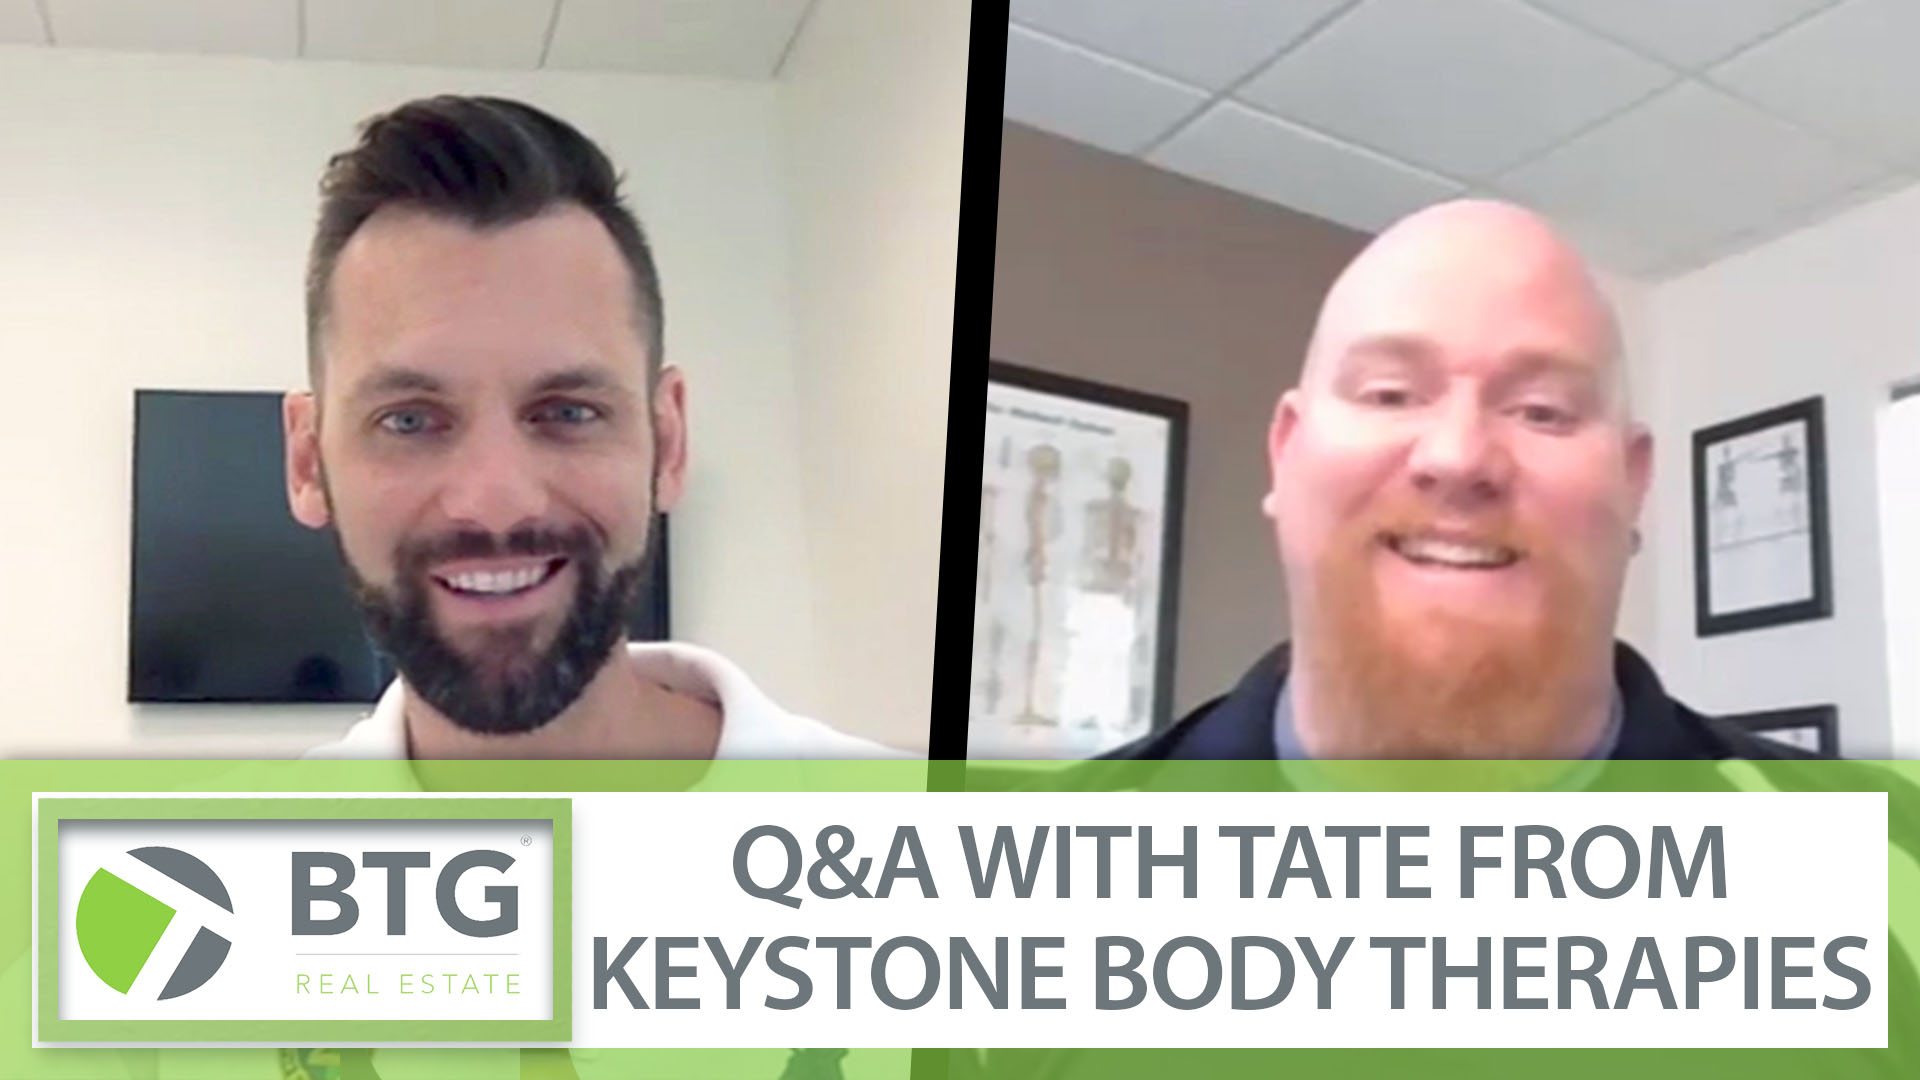 How Does Keystone Body Therapies Serve Our Community?